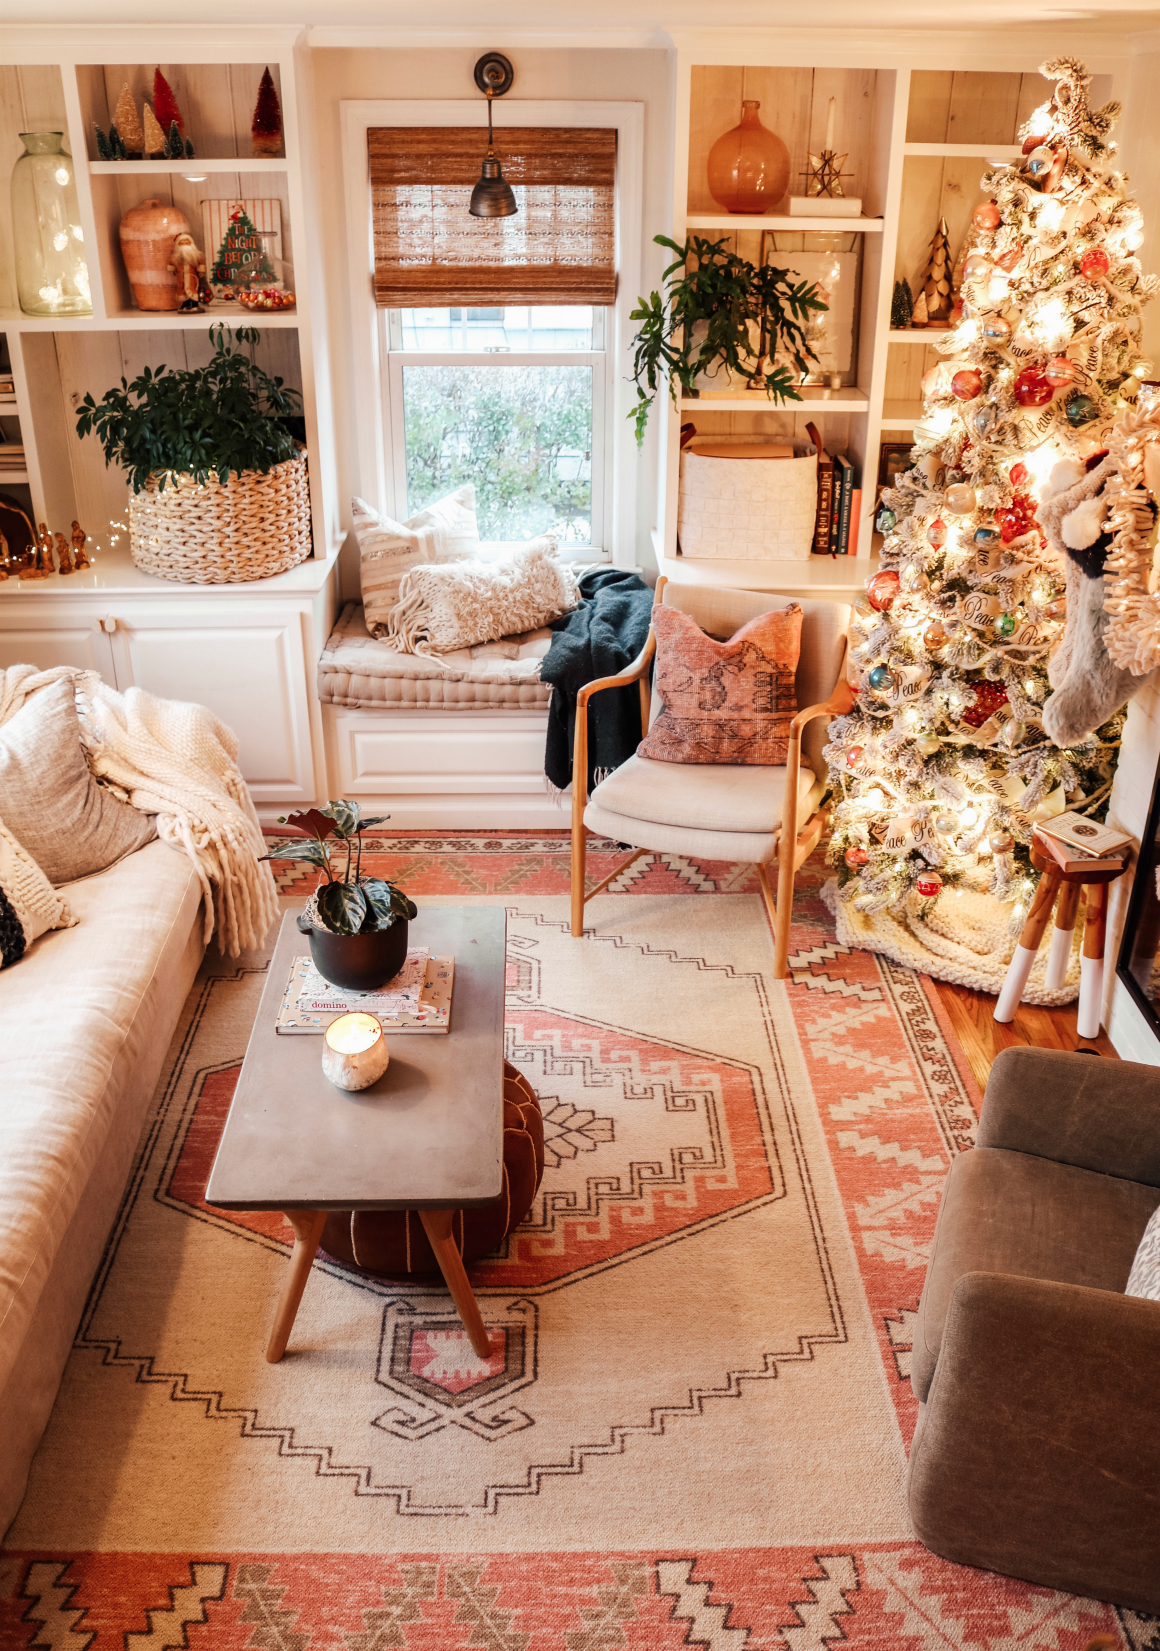 Complete Christmas Home Tour with VIDEO and Favorite Things images